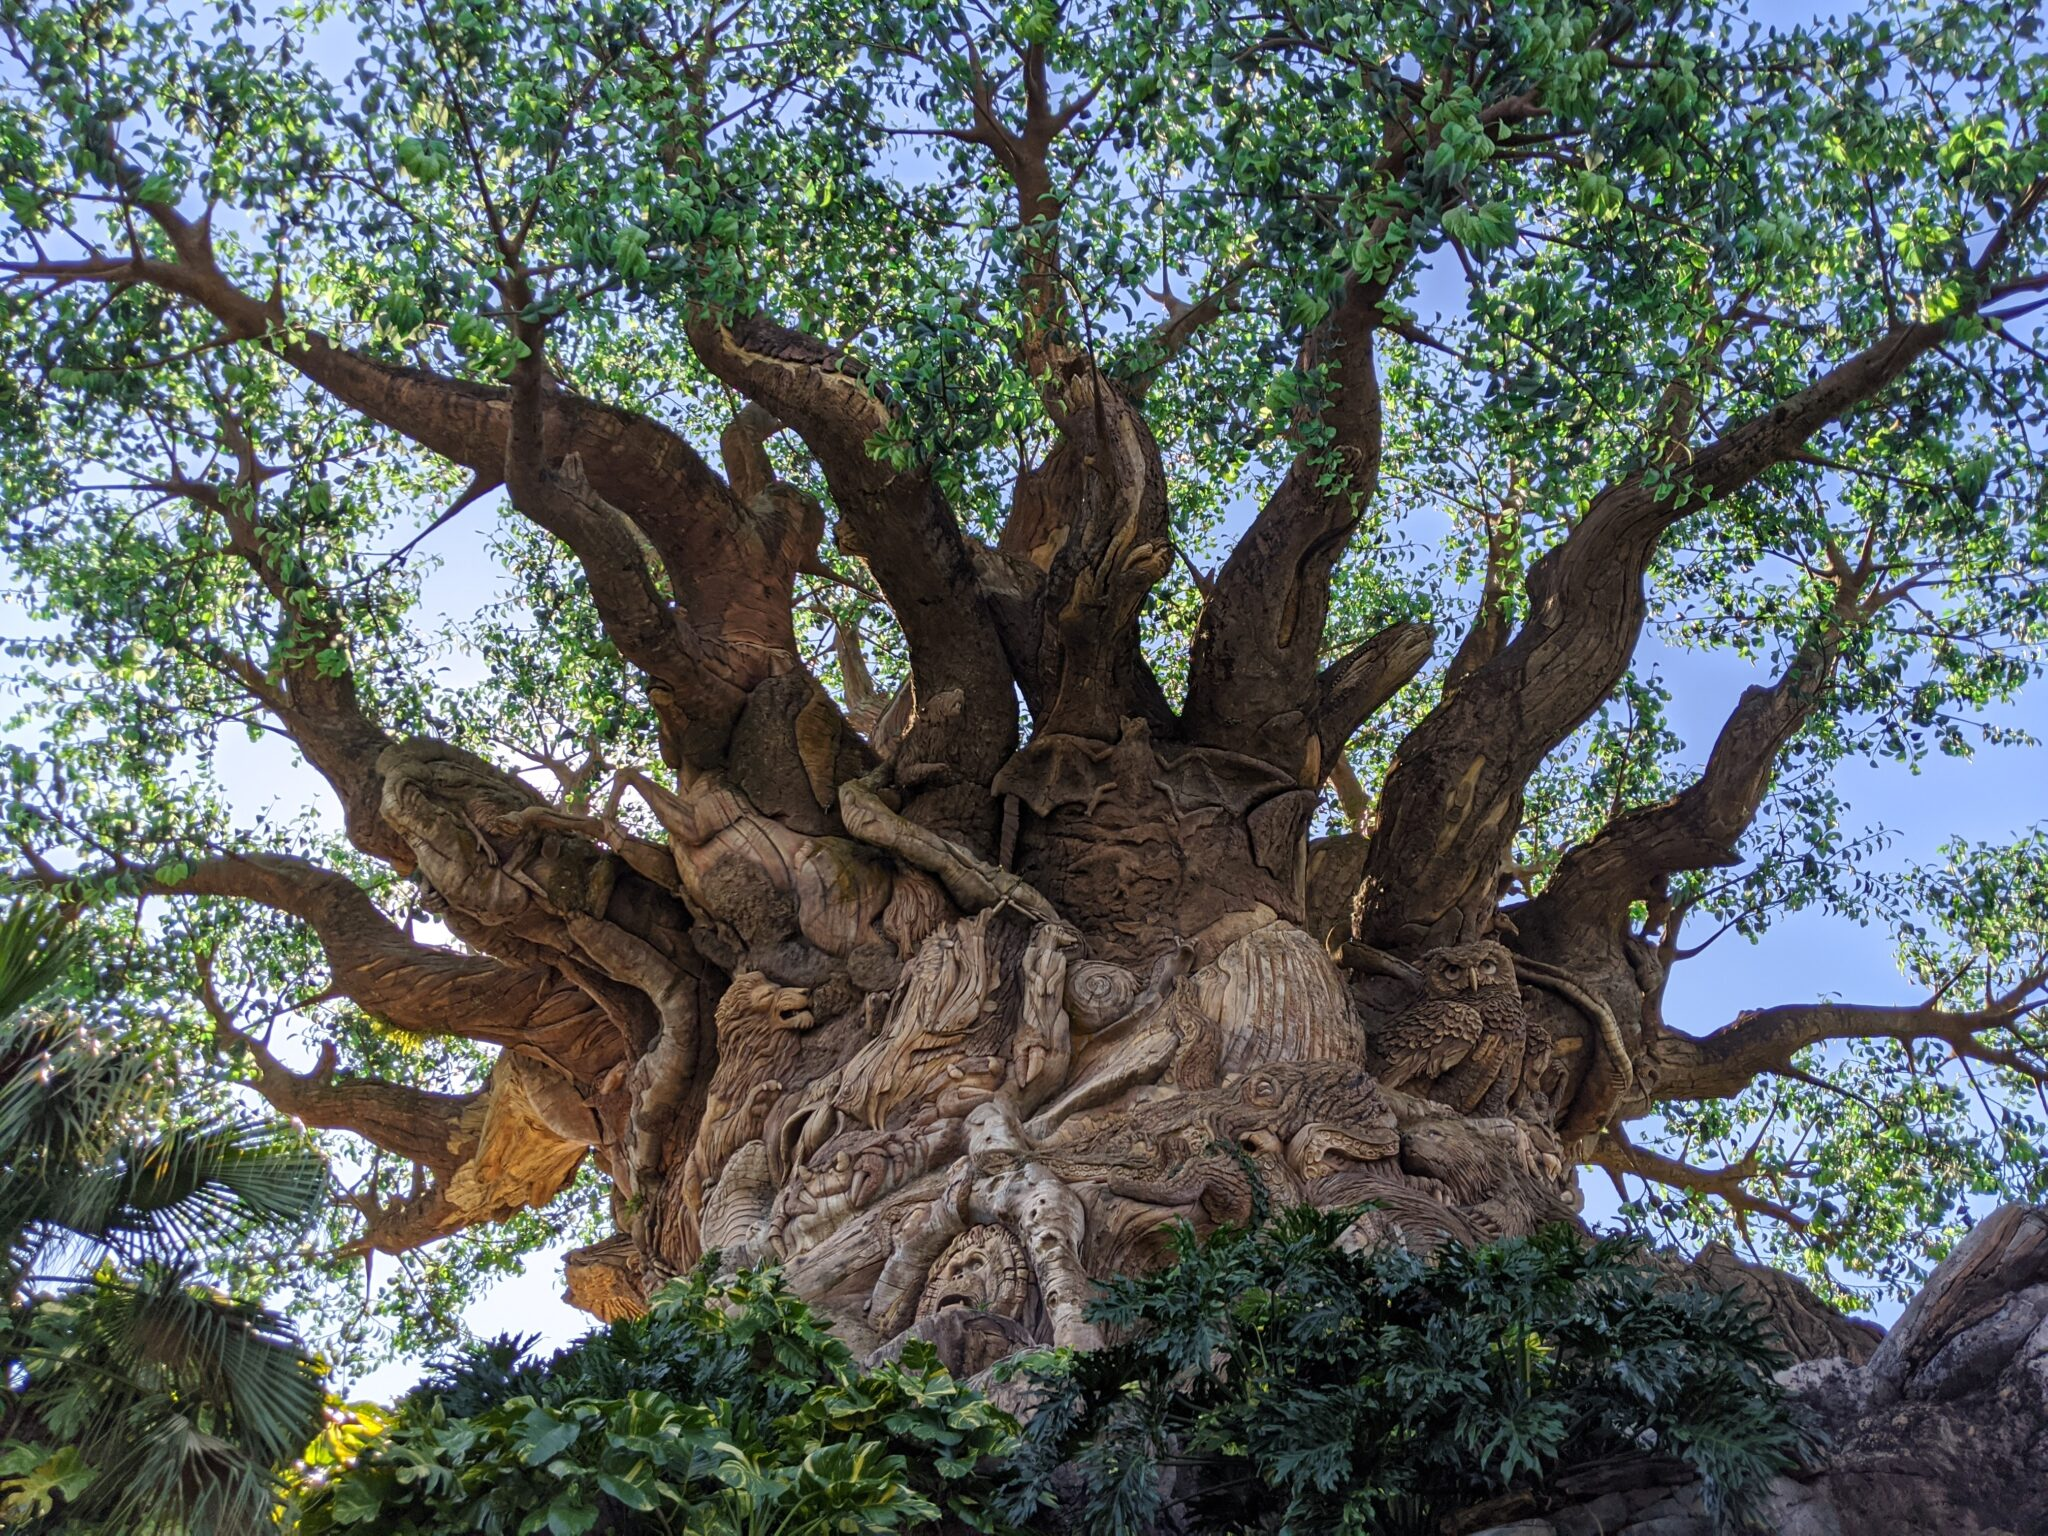 Best Spots for Photos at Walt Disney World All Things with Purpose Sarah Lemp 8